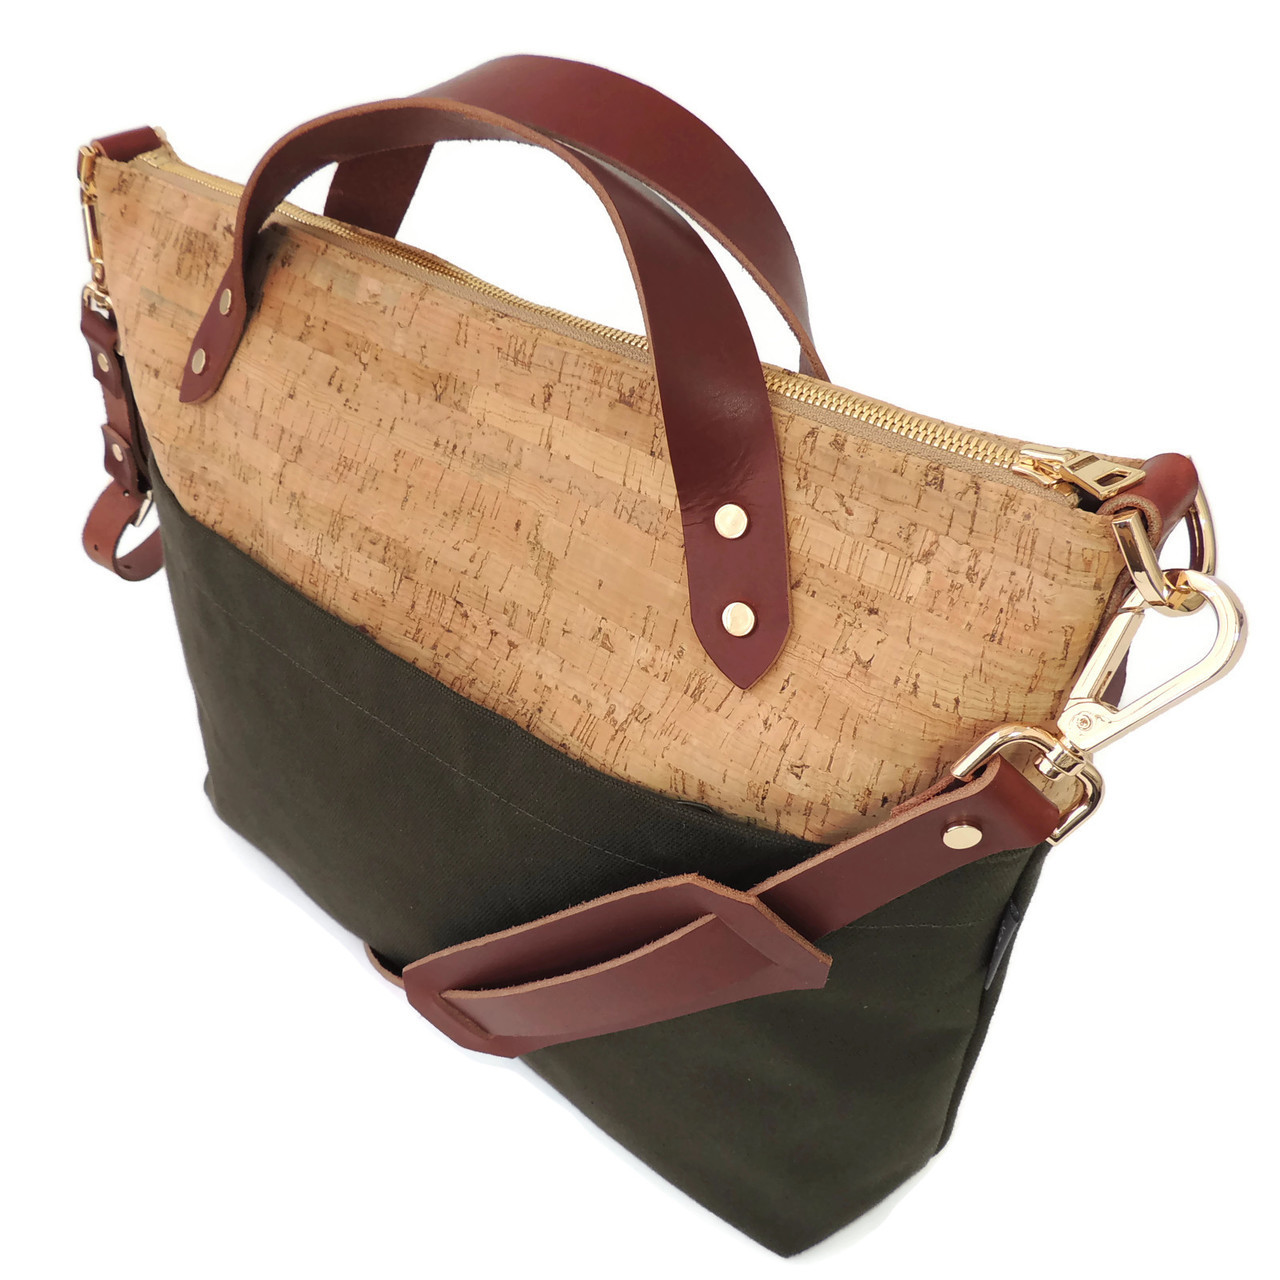 Satchel in Cork Dash with Olive Boot